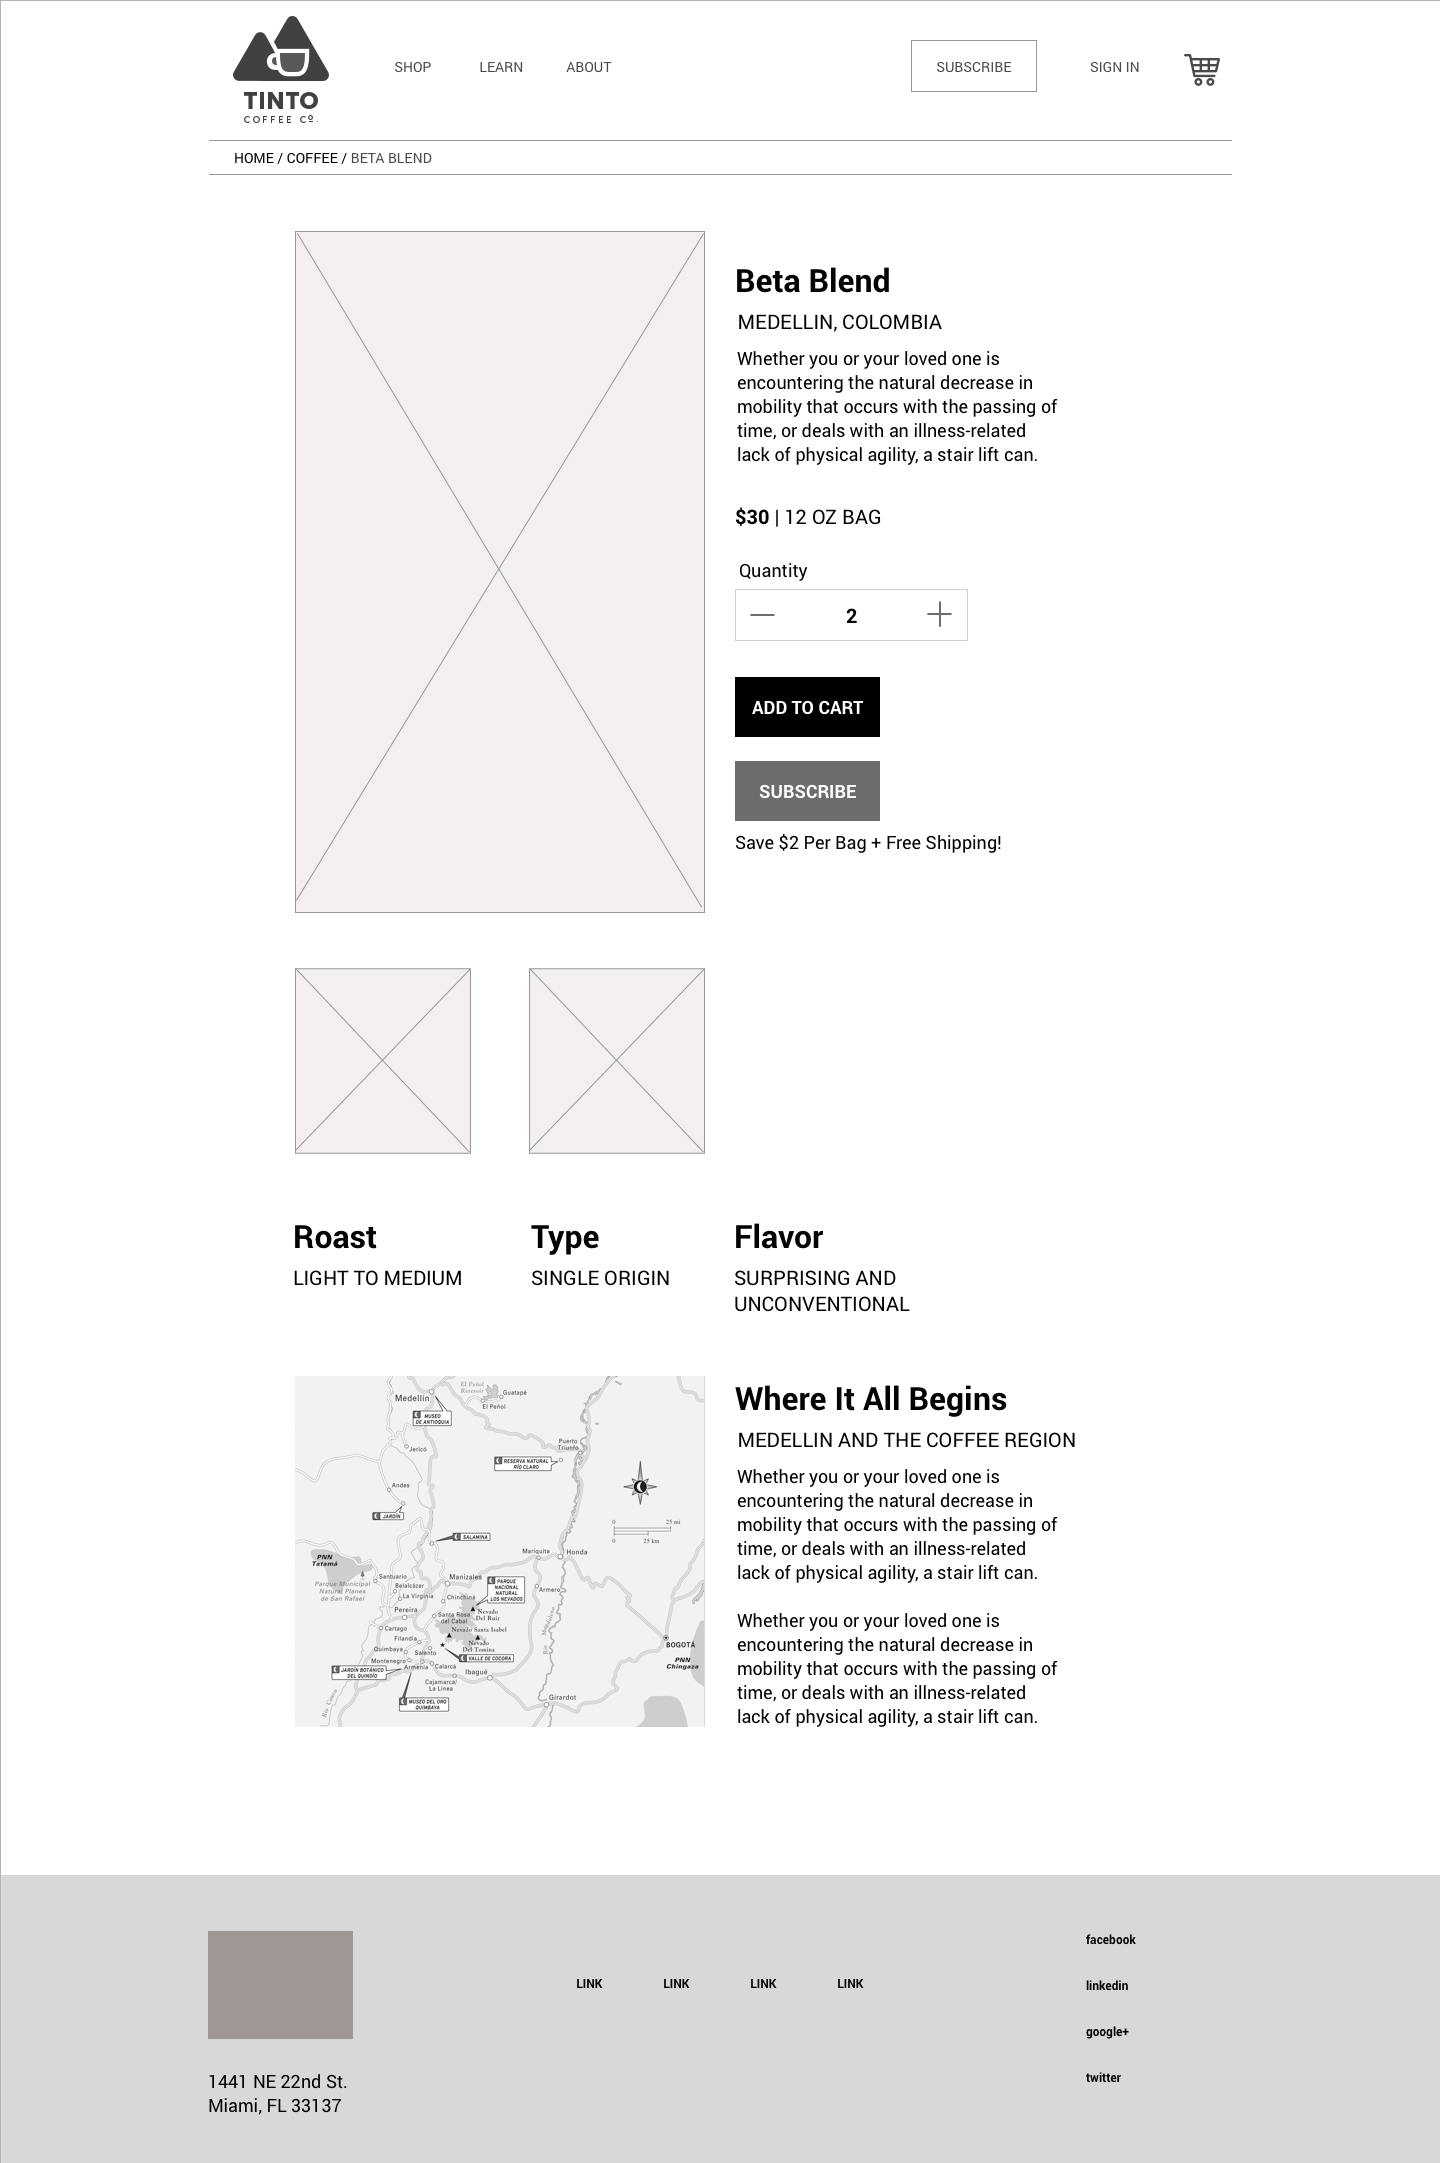 Product Detail Page V2